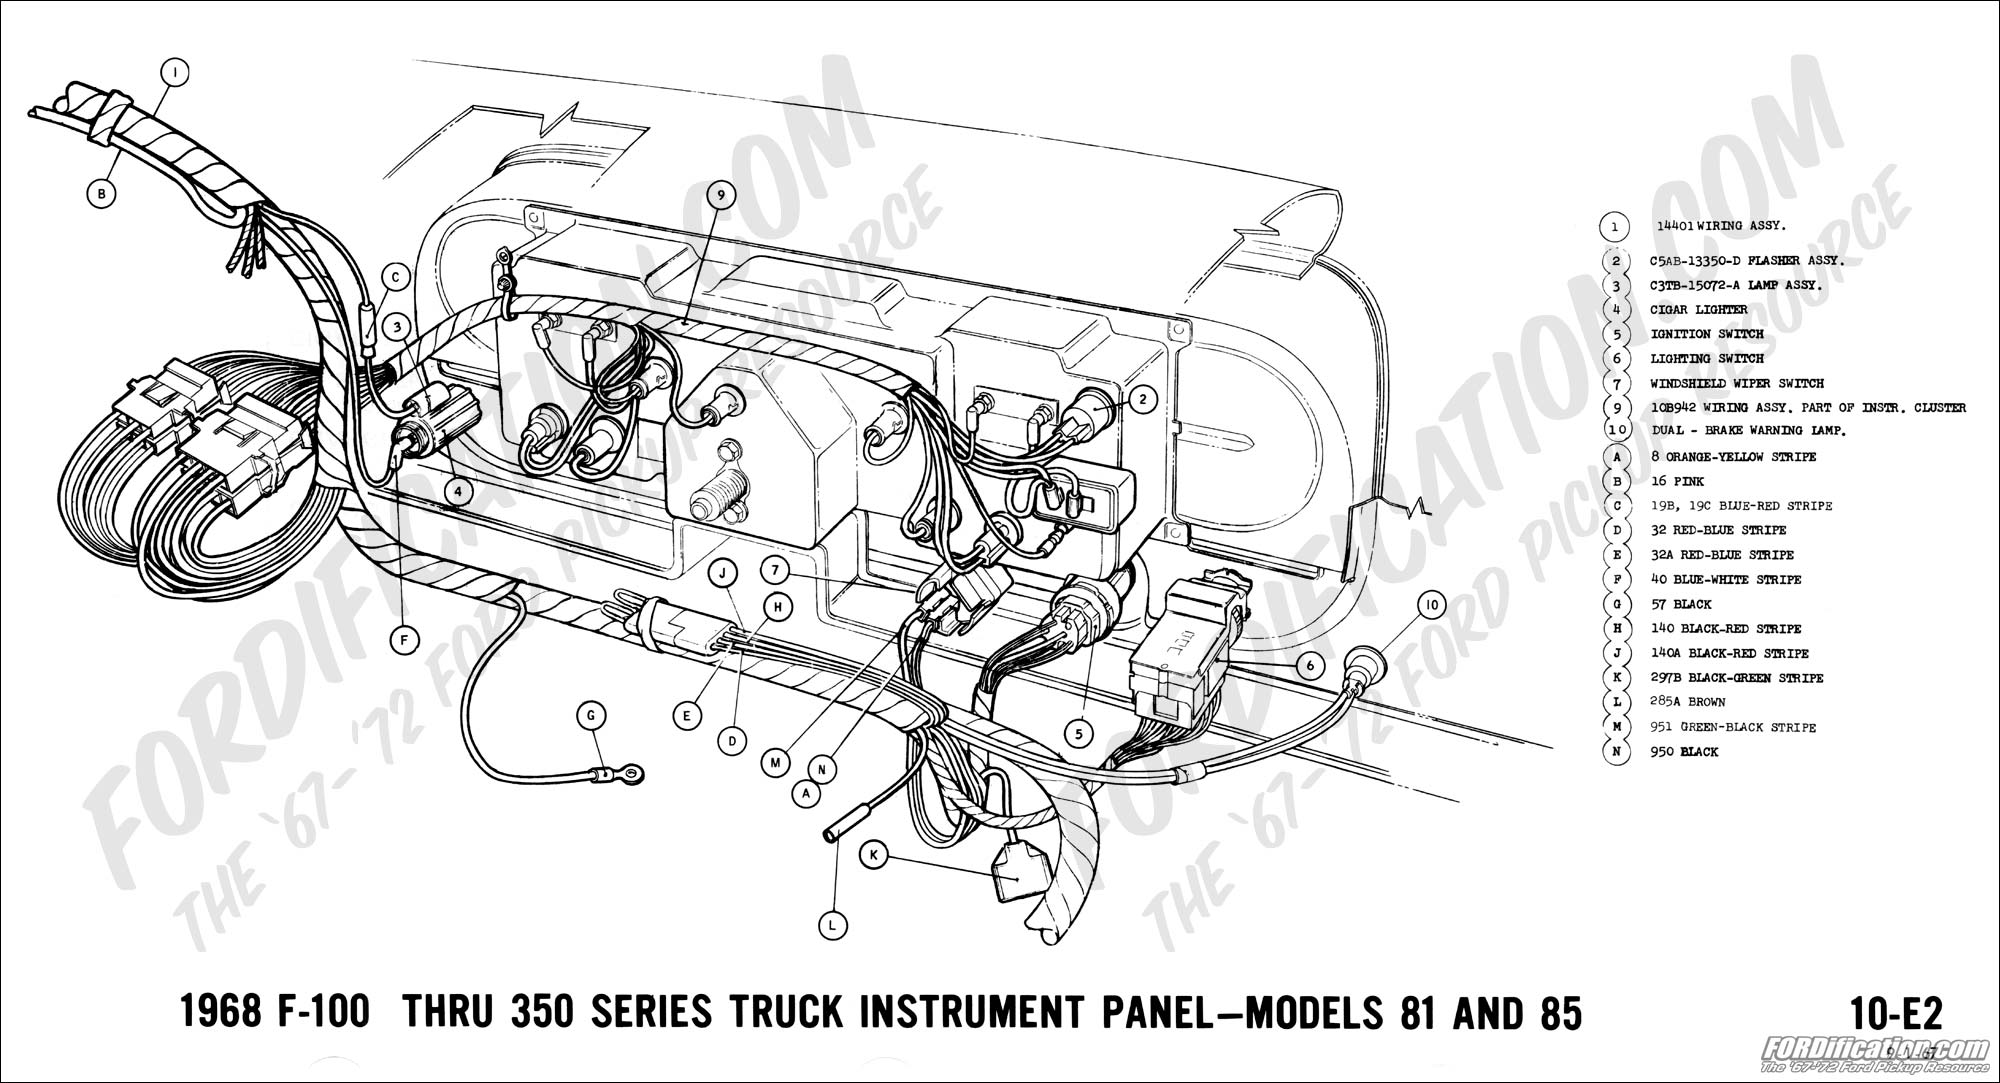 1968 Ford Truck Wiring Diagram Circuit Diagrams Geiger Counter Tradeoficcom Technical Drawings And Schematics Section H Rh Fordification Com